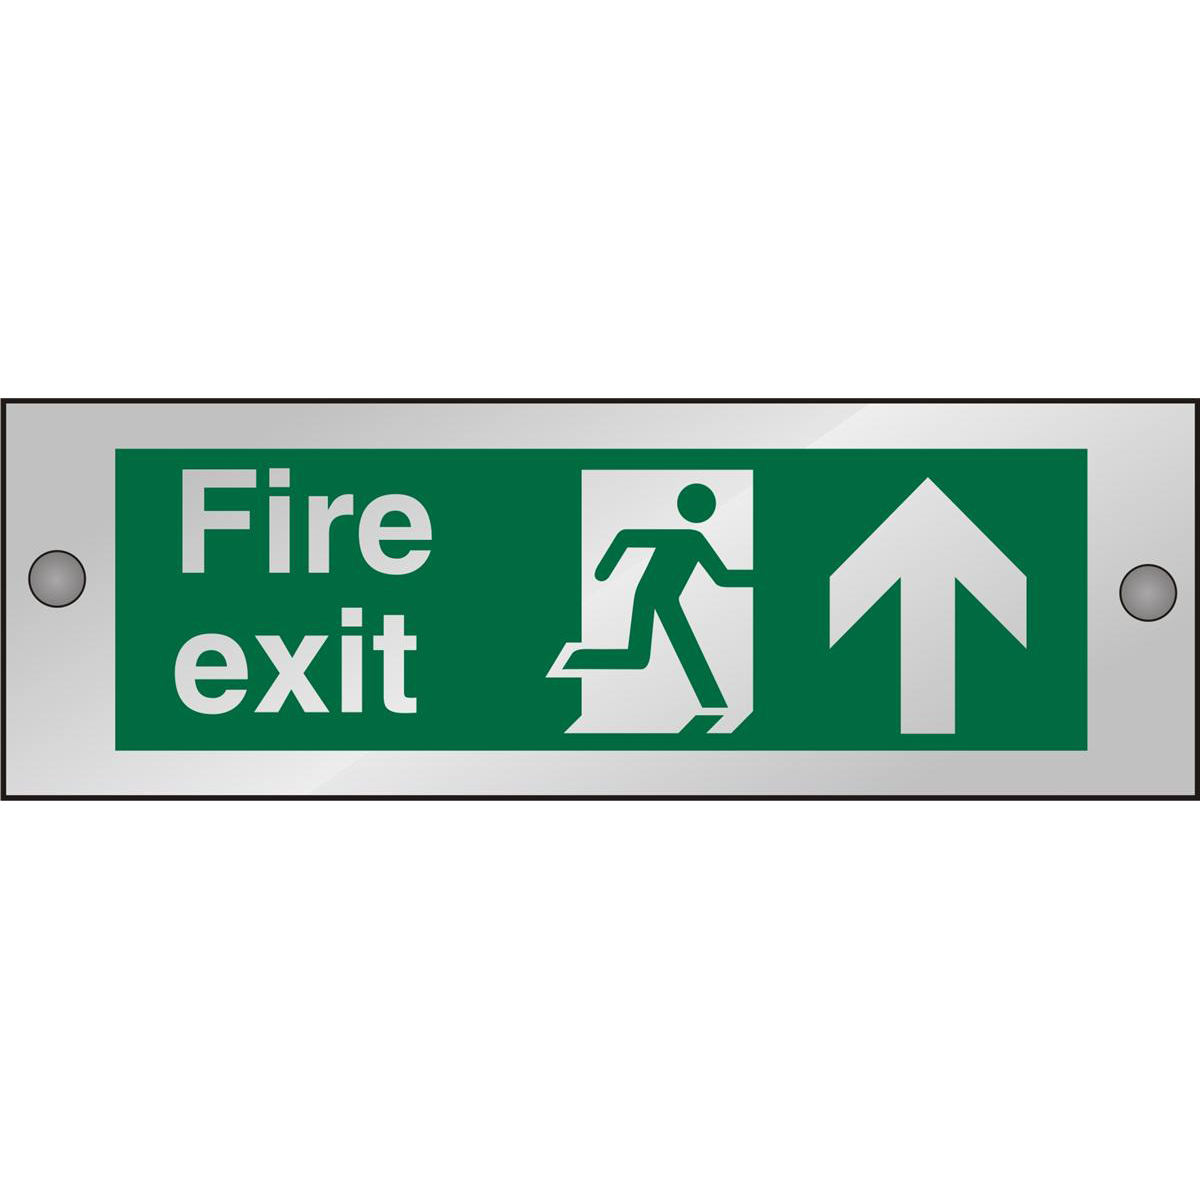 Clear Sign 300x100 5mm FireExit Man Running Right&Arrow Up Ref CACSP129300x100 Up to 10 Day Leadtime